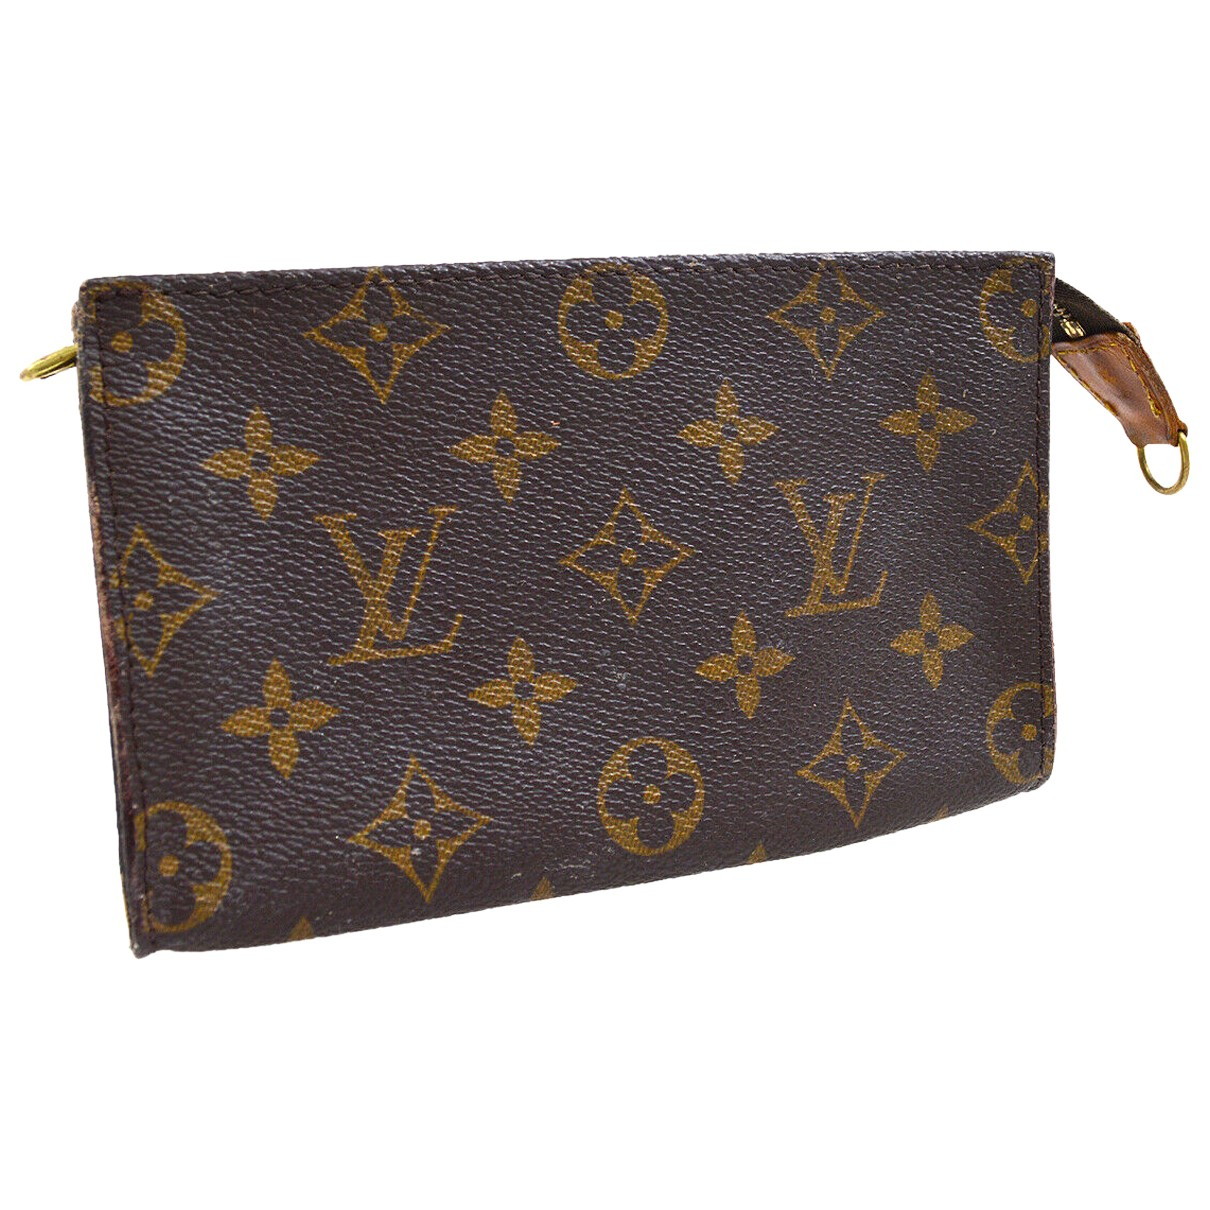 Louis Vuitton N Leather Purses, wallet & cases for Women N